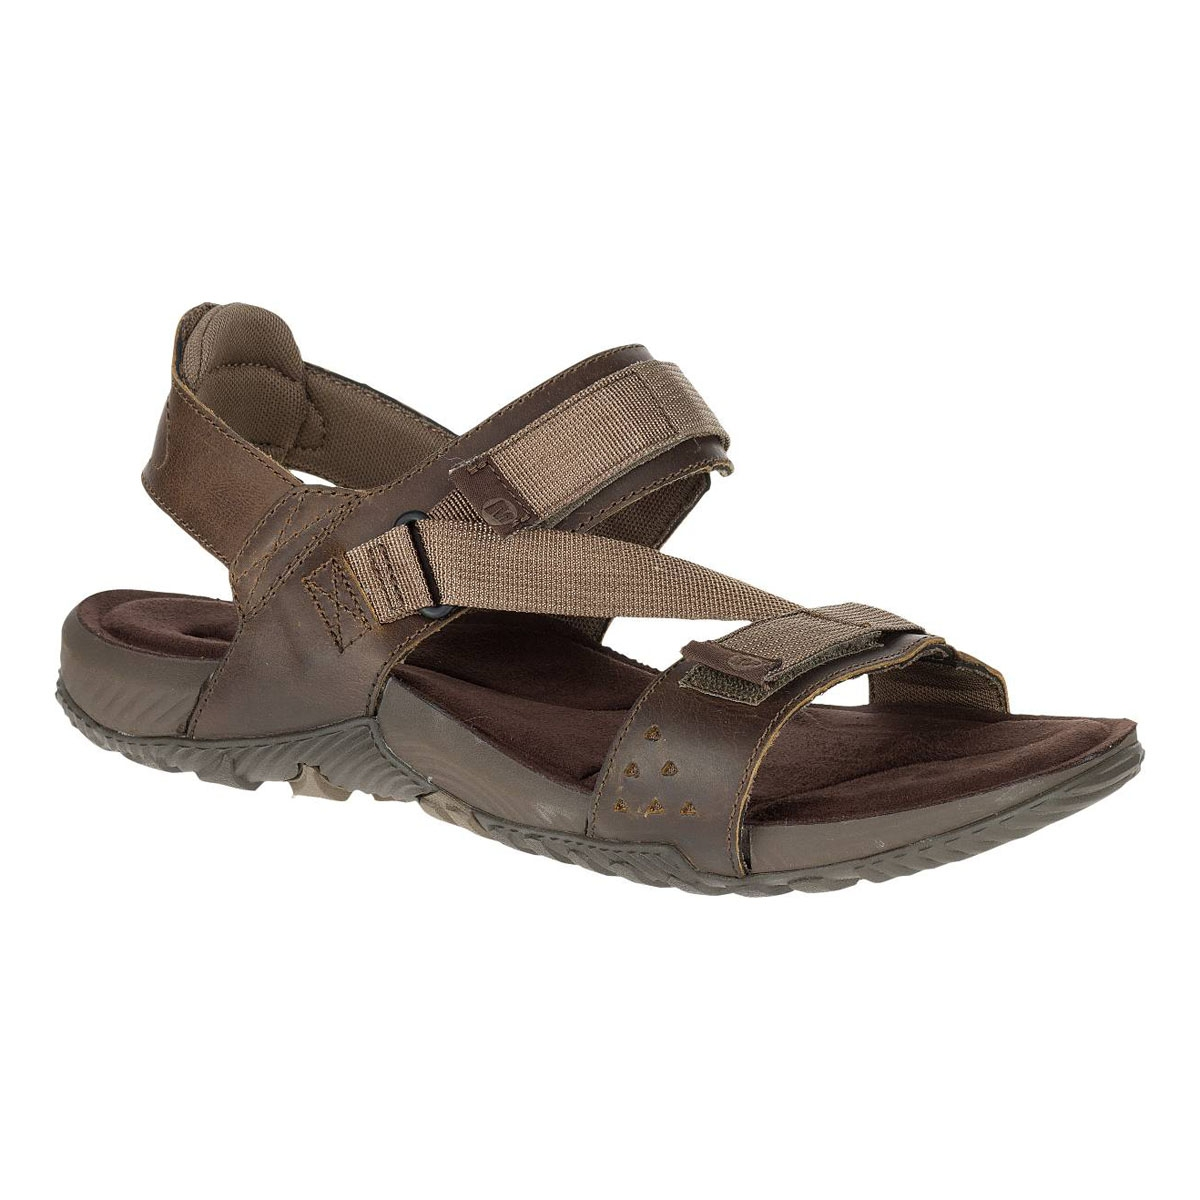 7b75e3586f48 Image of Merrell Terrant Strap Sandals (Men s) - Dark Earth